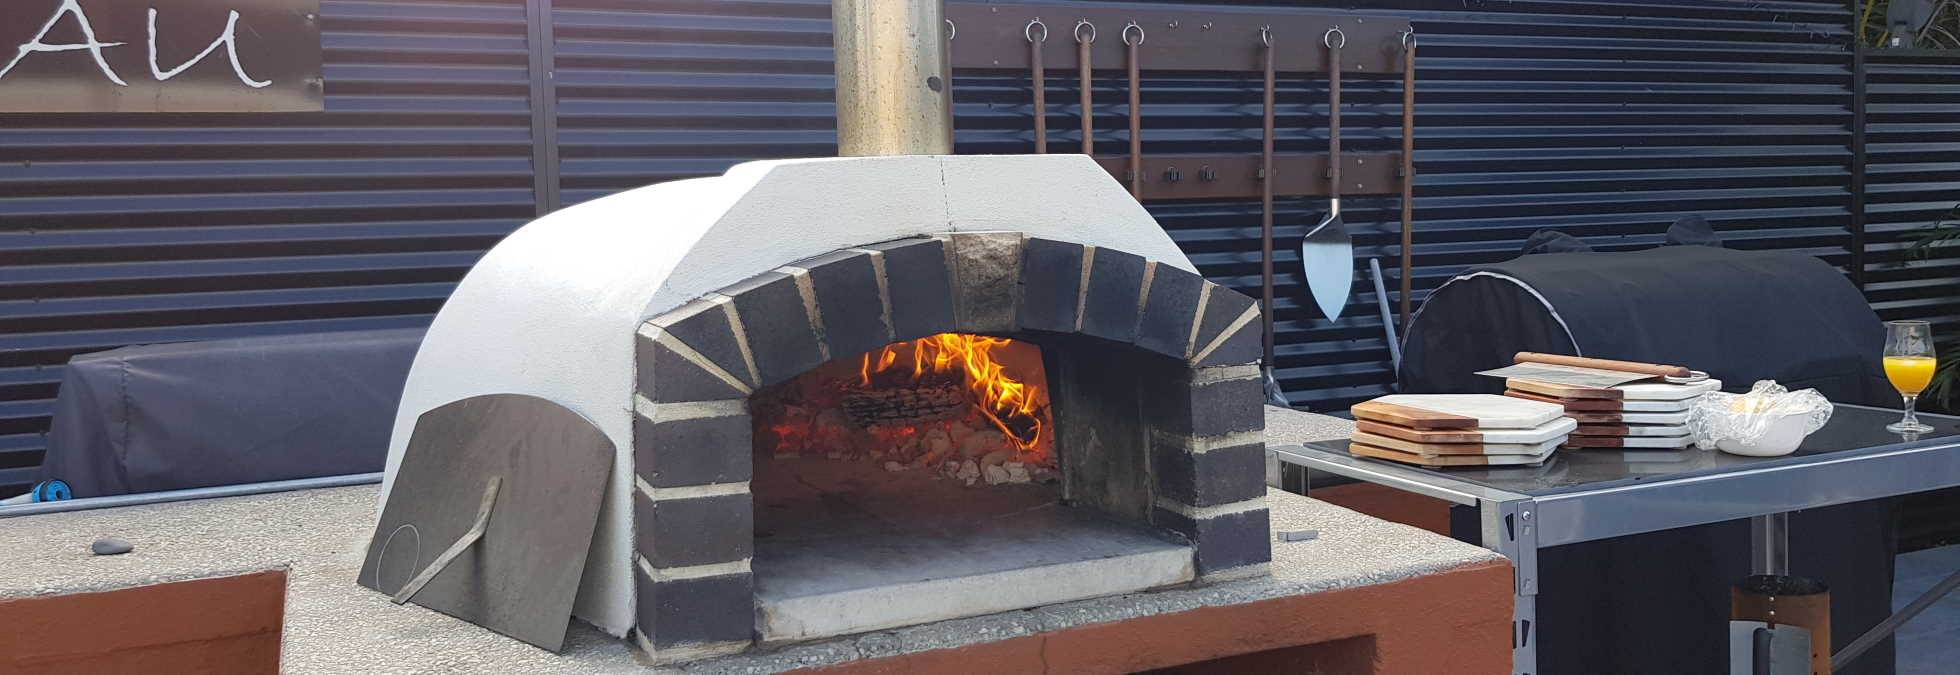 Sienna 1000 wood fired oven